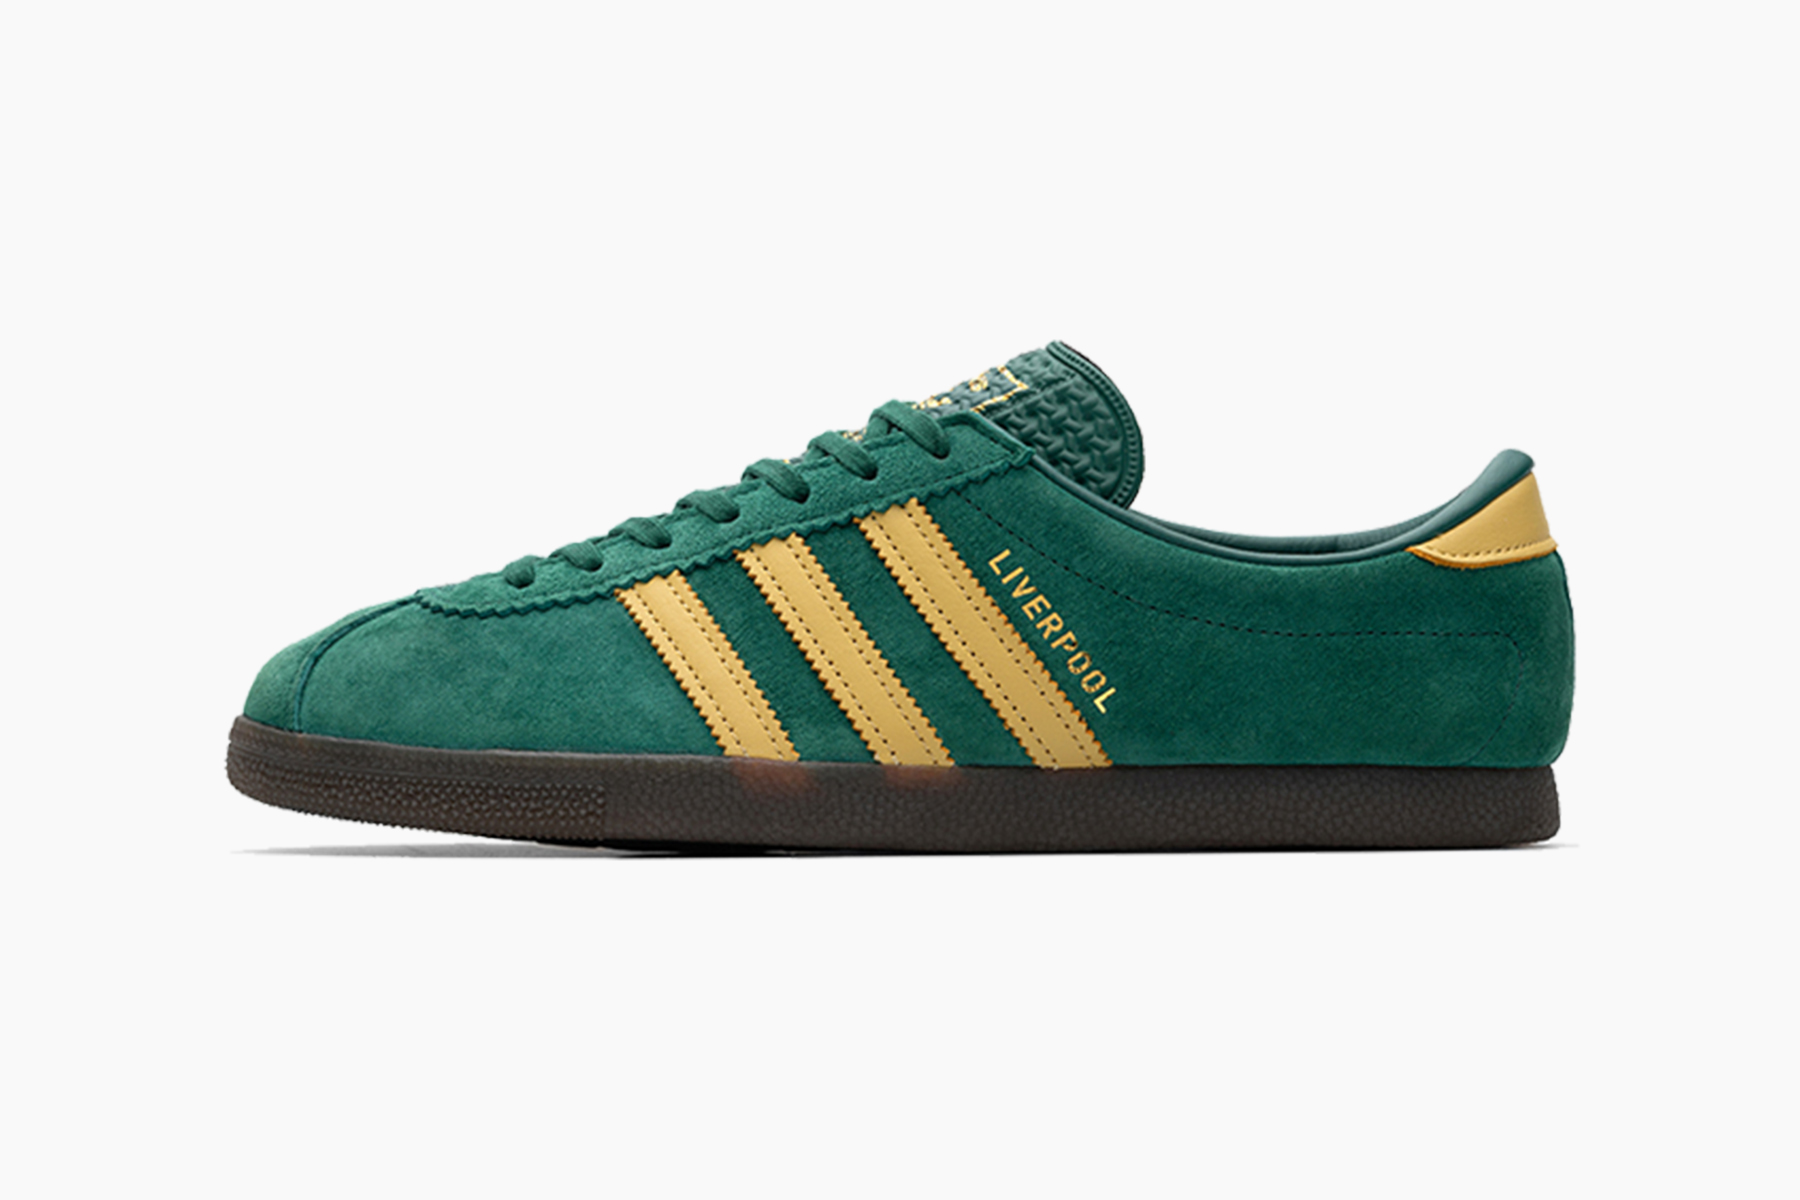 Empleado Aire acondicionado Travieso  Coming up for 2020 - adidas Originals - Size 20th Anniversary | Man Savings